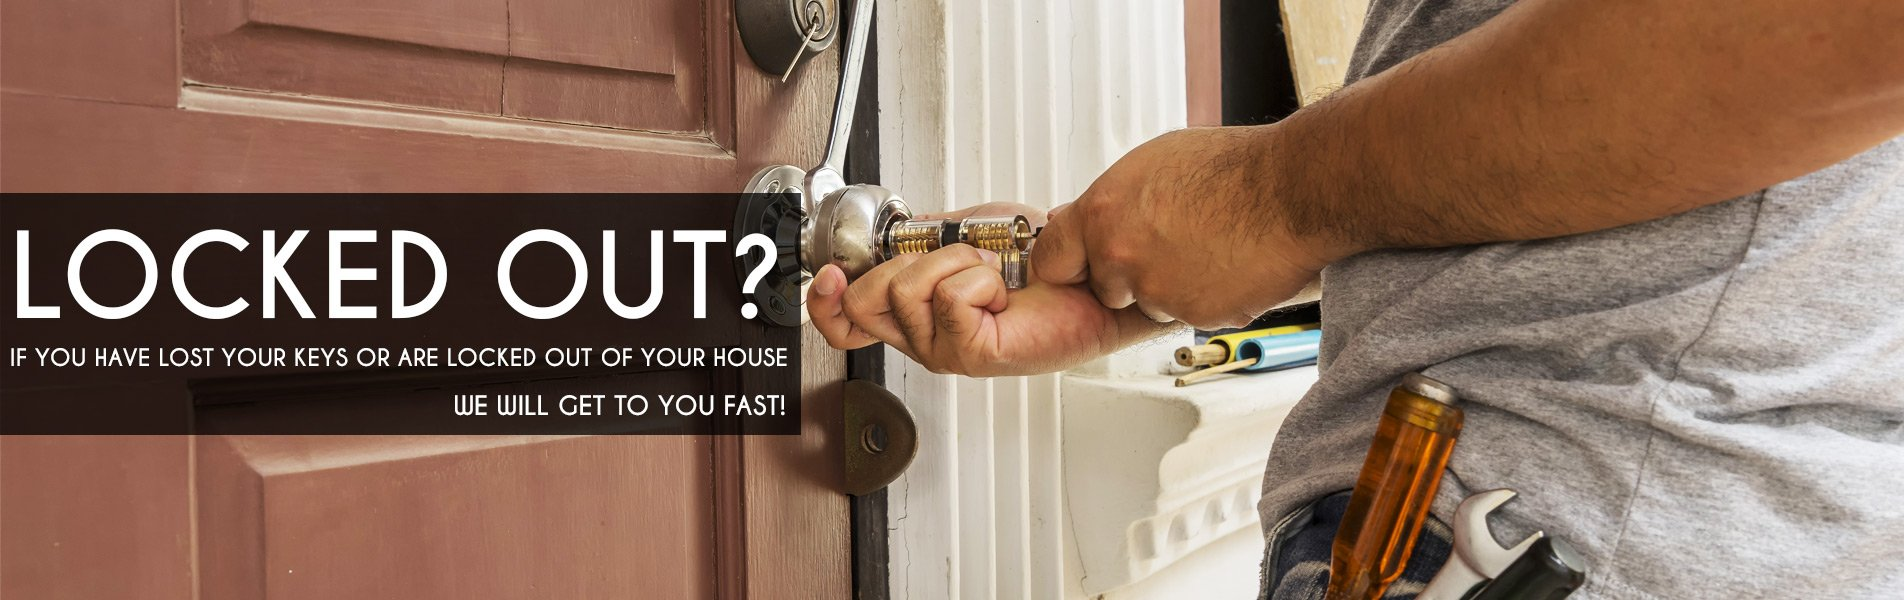 Vauxhall NJ Locksmith Store Vauxhall, NJ 908-259-4877